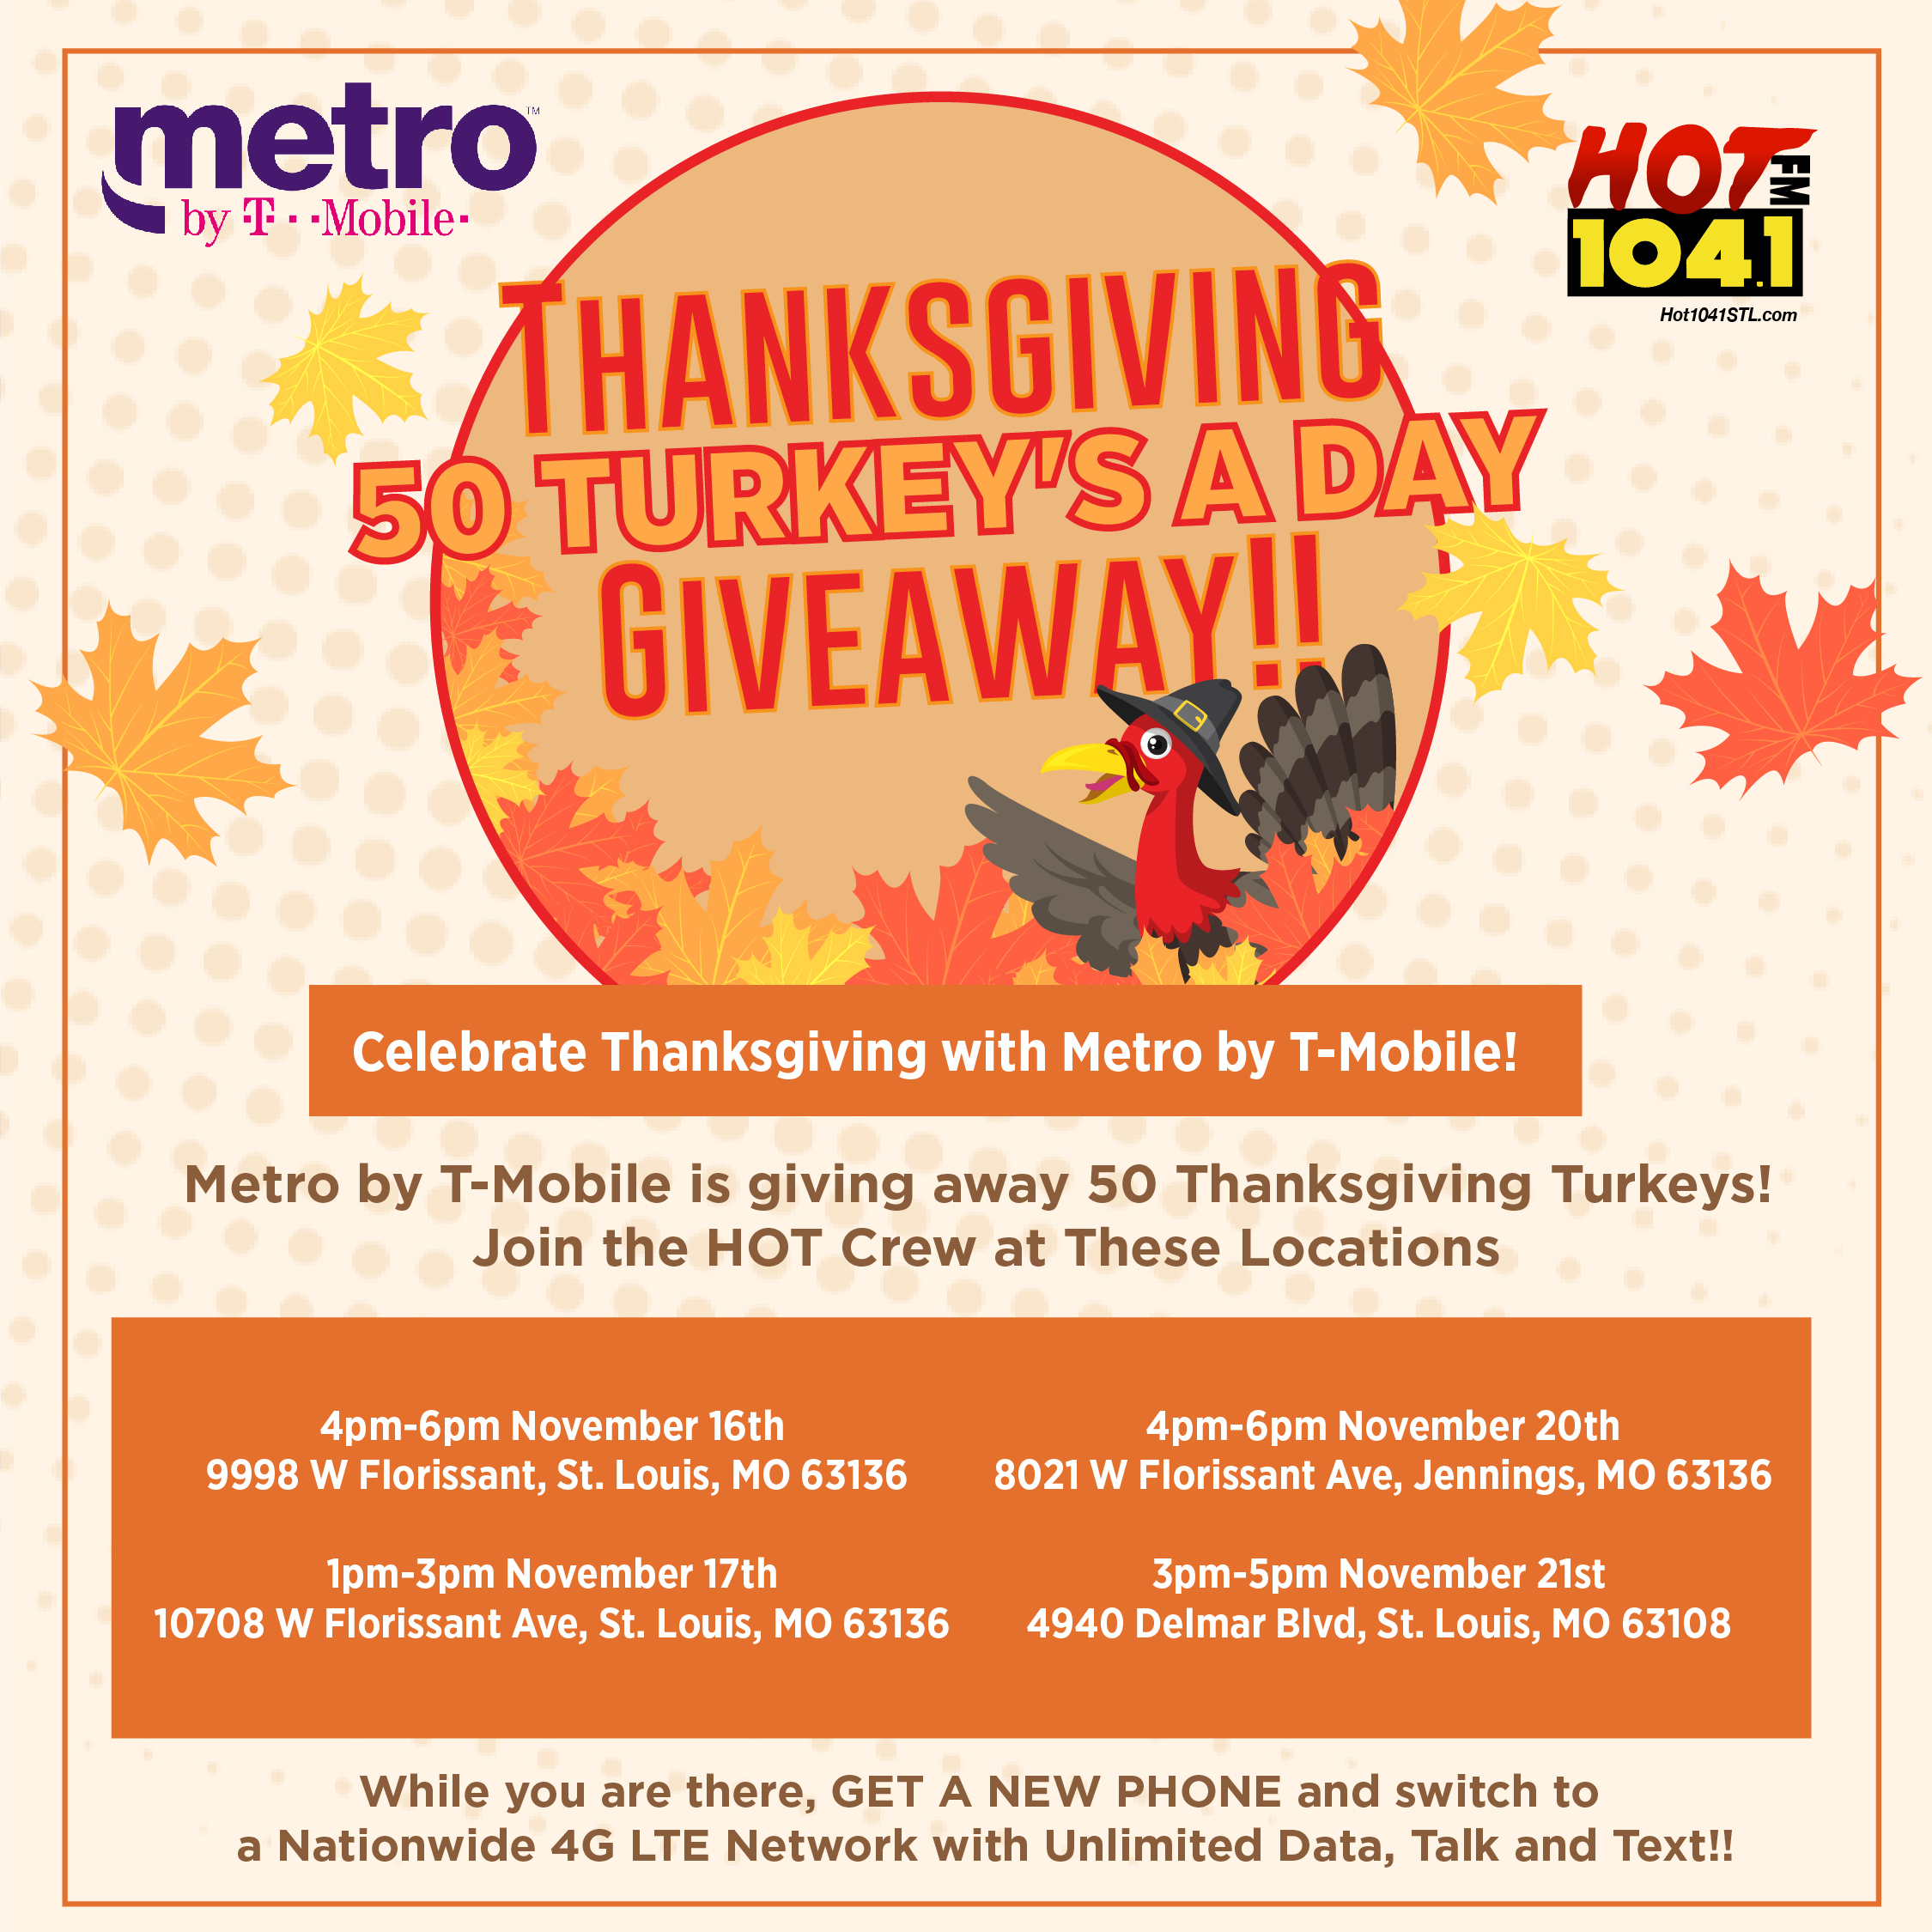 Metro by T-Mobile Turkey Giveaway